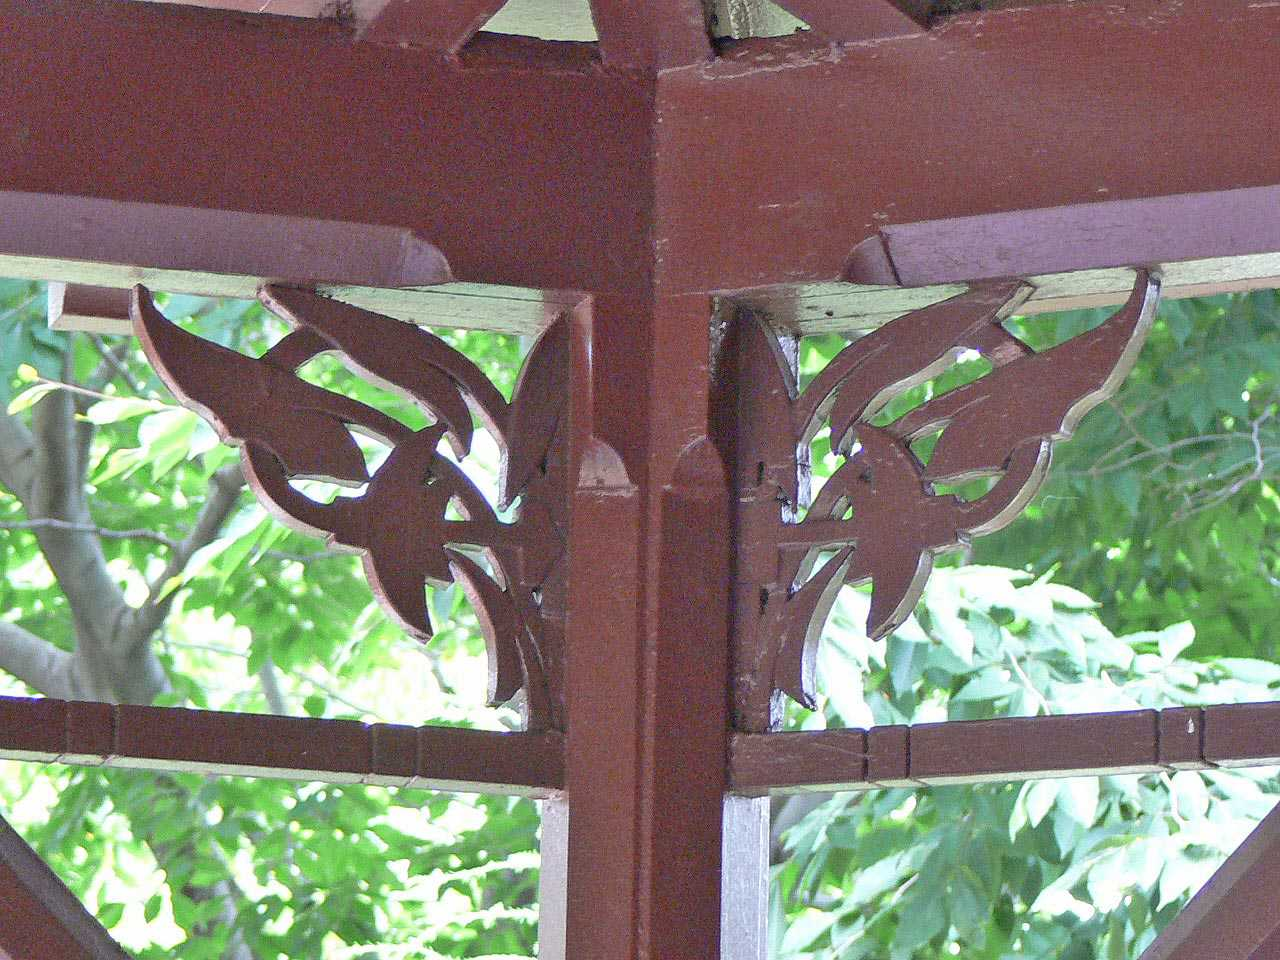 Porch pillars at the Mark Twain house are ornamented with a decorative leaf motif.